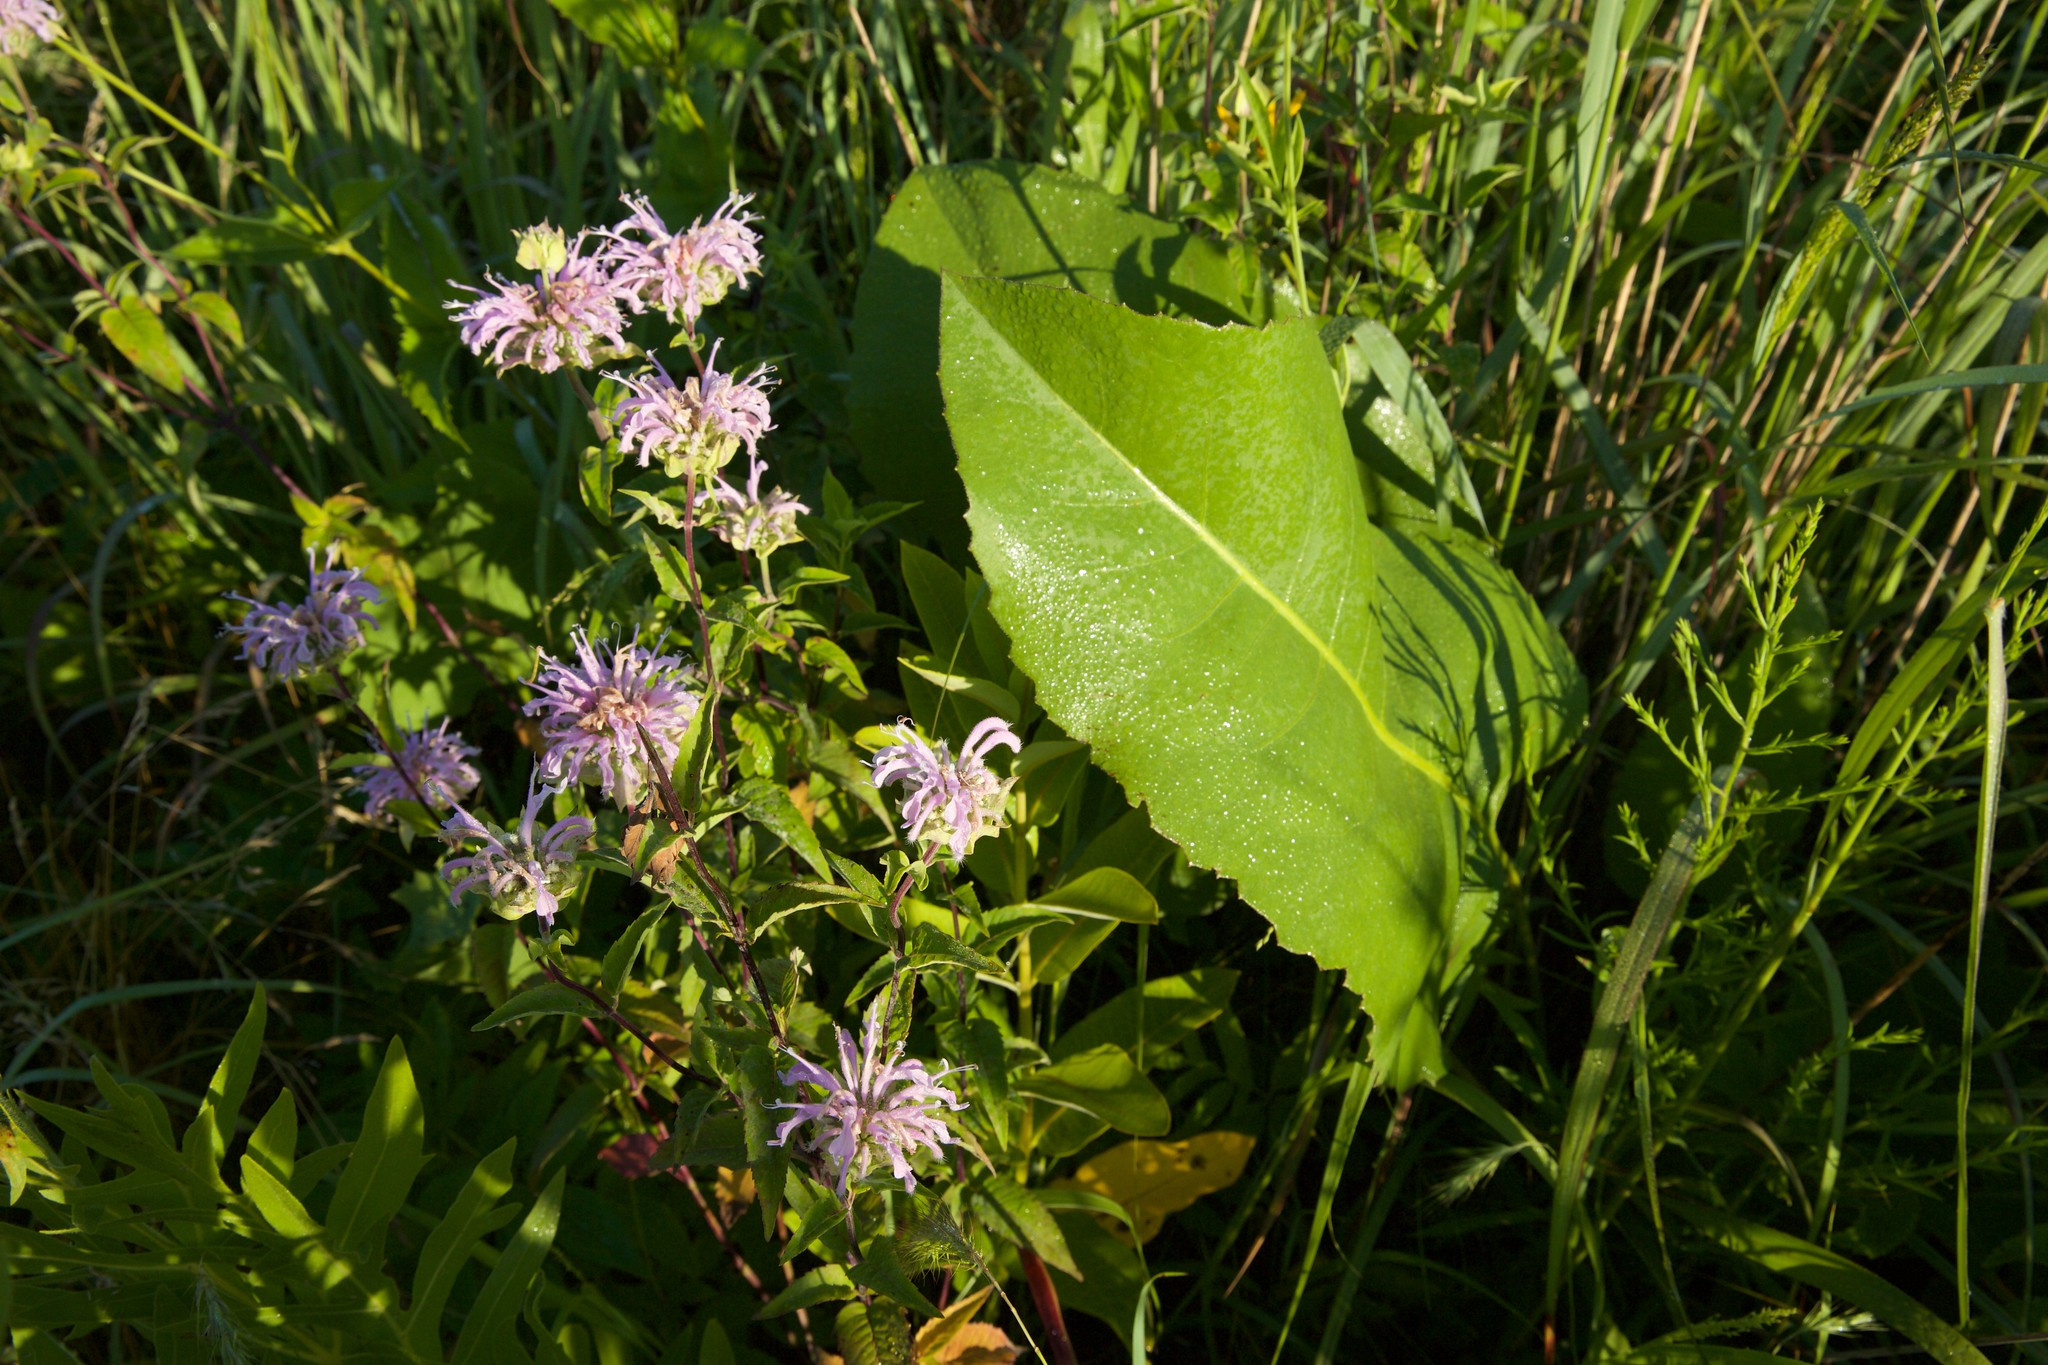 Bee balm are in full bloom at Goose Pond Sanctuary. Photo by Arlene Koziol